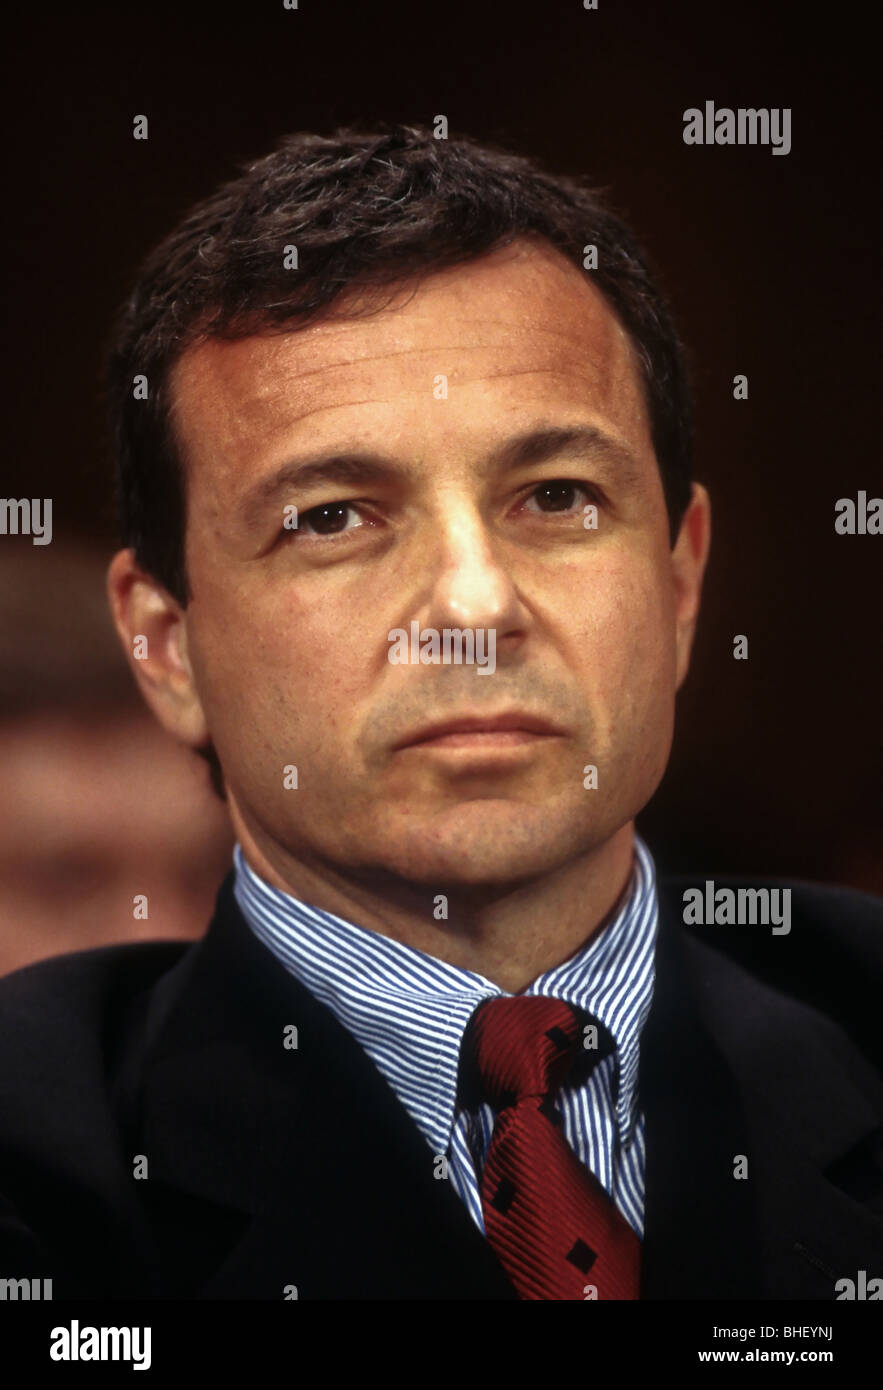 Robert Iger, President of ABC Television testifies in Congress July 7, 1998 in Washington, DC on anti-trust issues Stock Photo